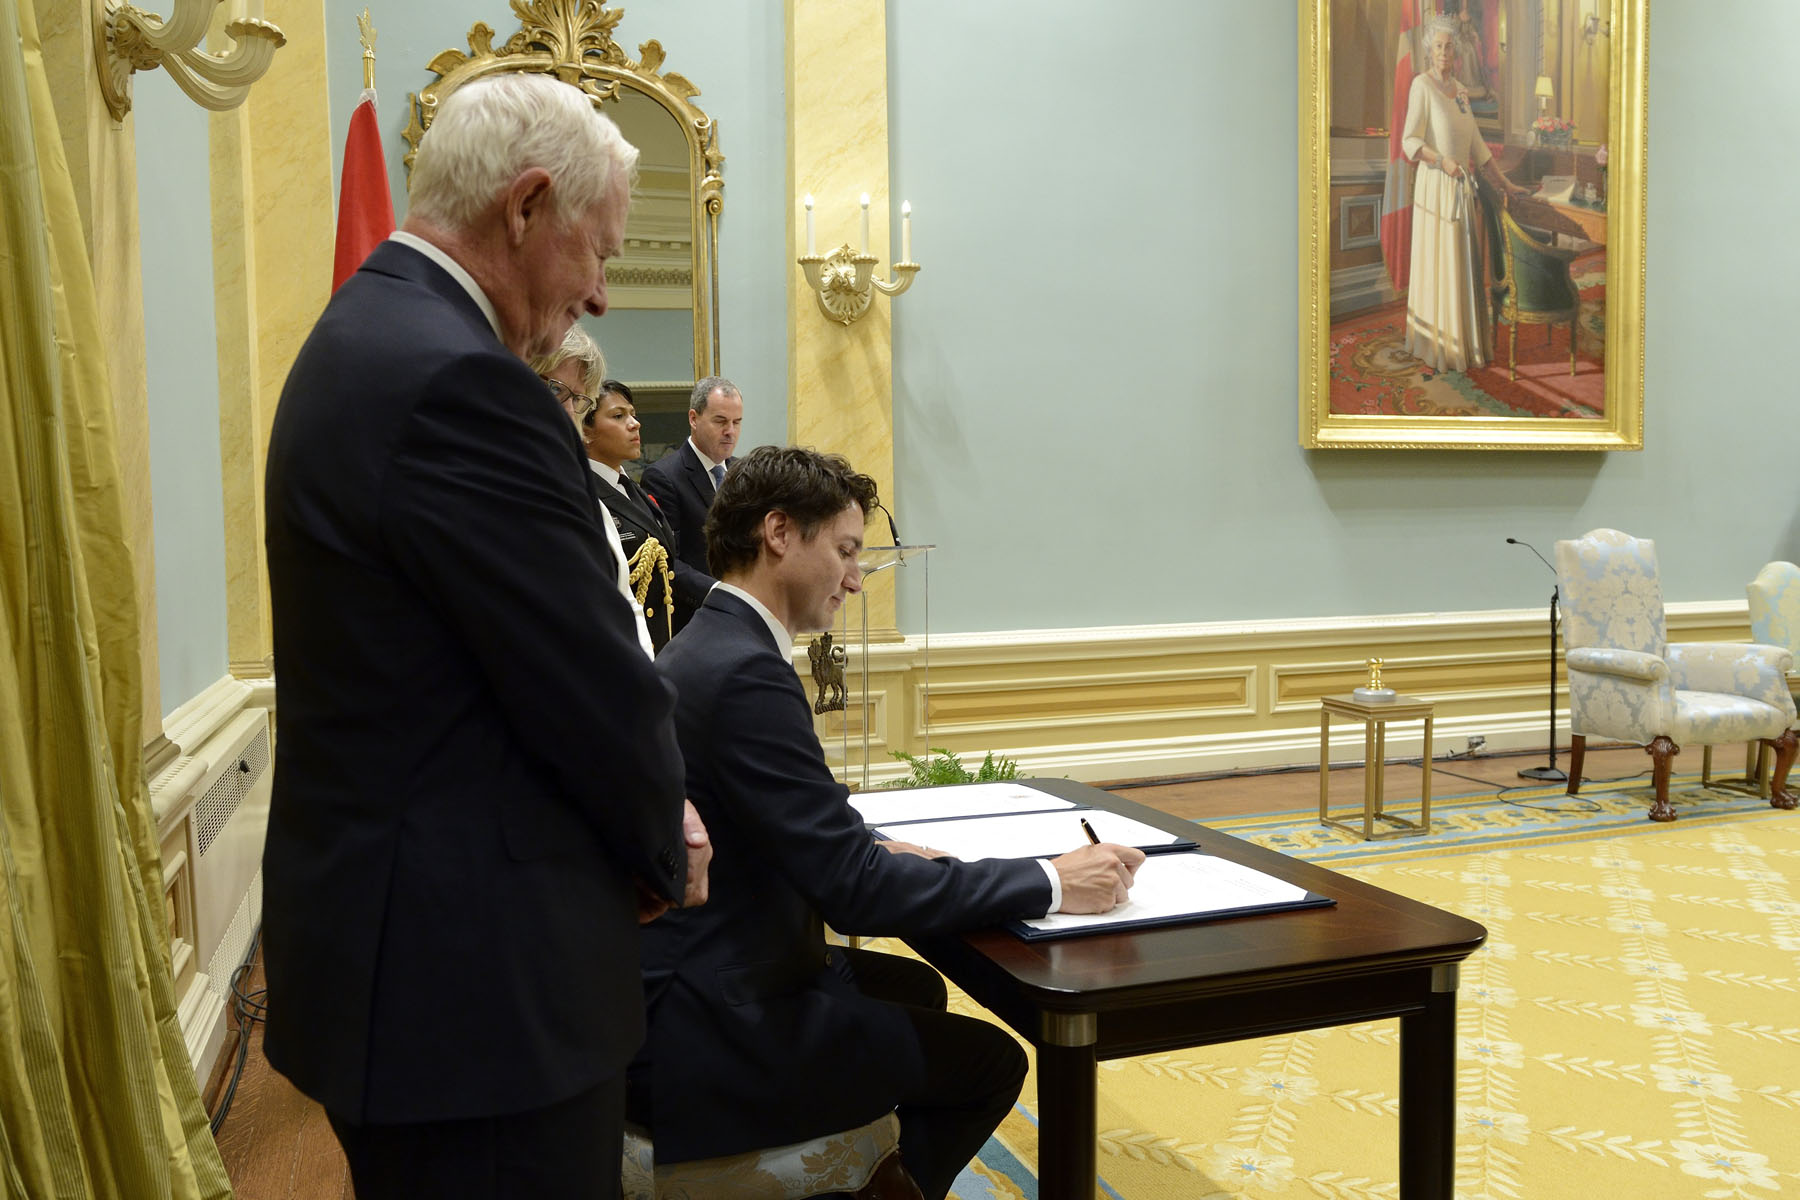 The Prime Minister signed the oath books, followed by the Governor General and the Clerk of the Privy Council and Secretary to the Cabinet.